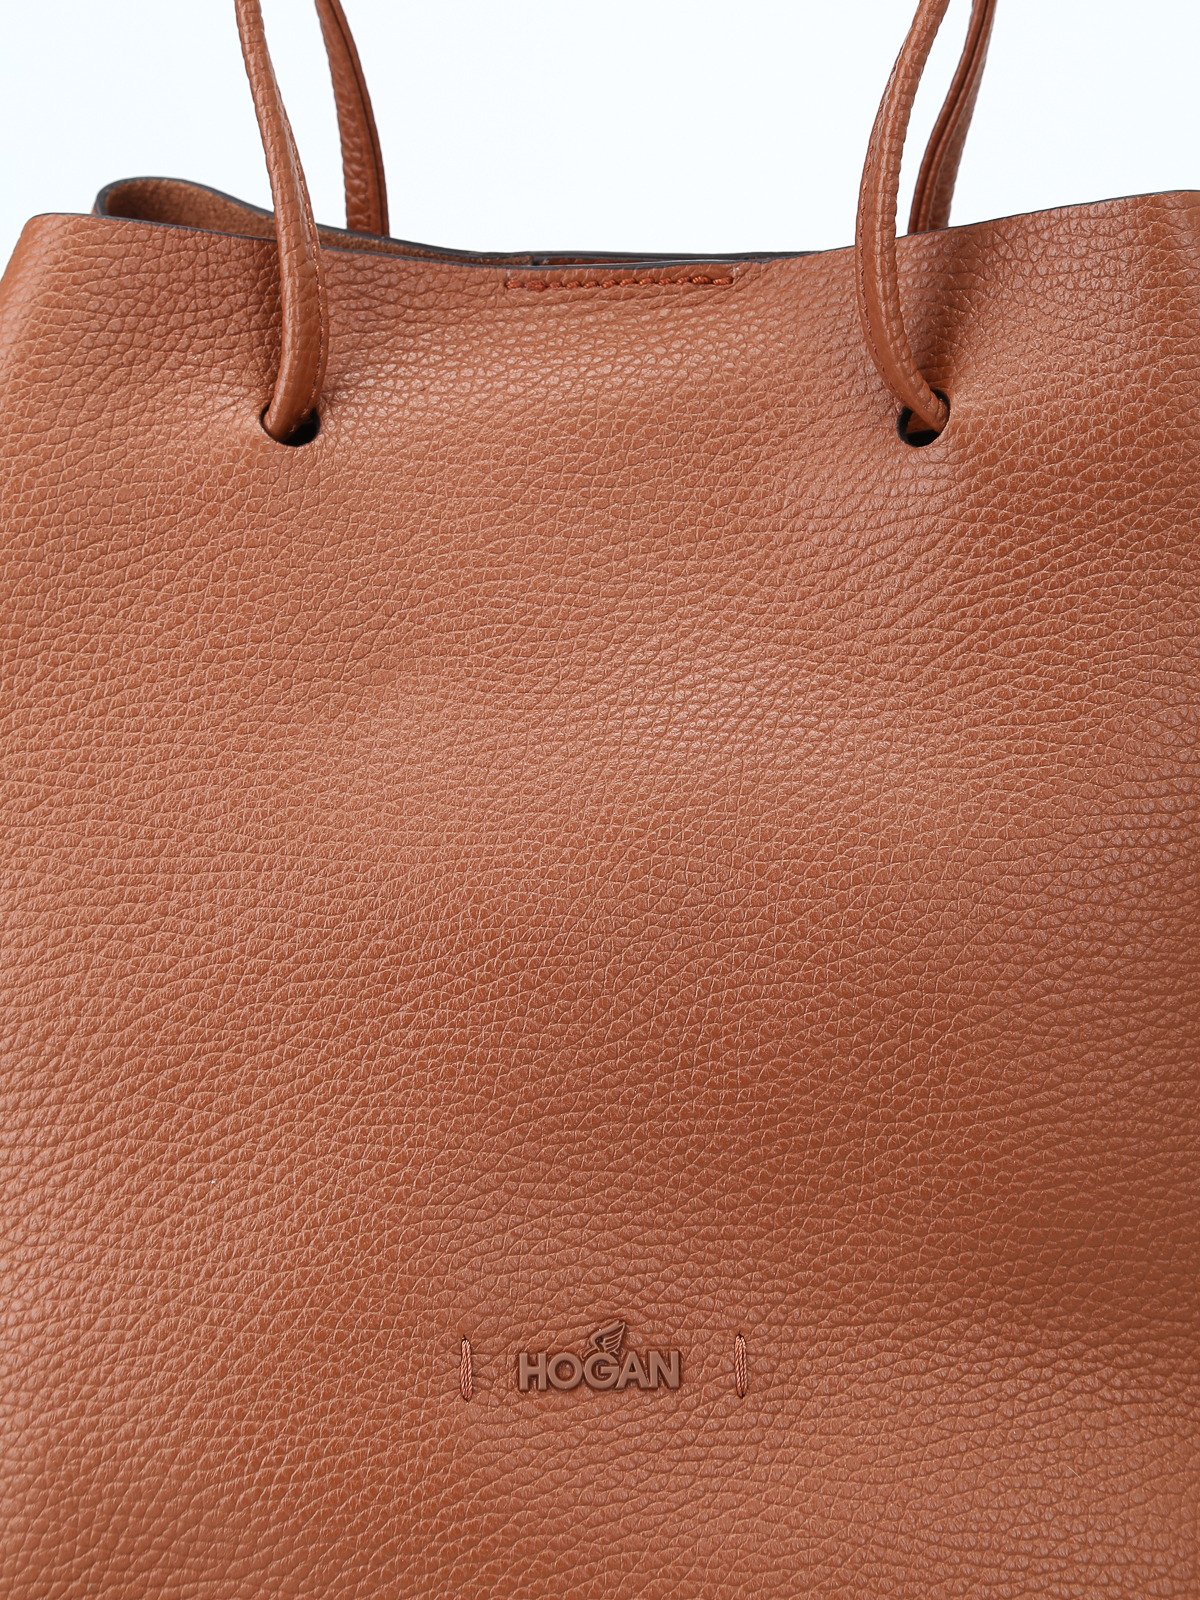 Hogan - Brown soft hammered leather bucket bag - Bucket bags ... dadae598e4f